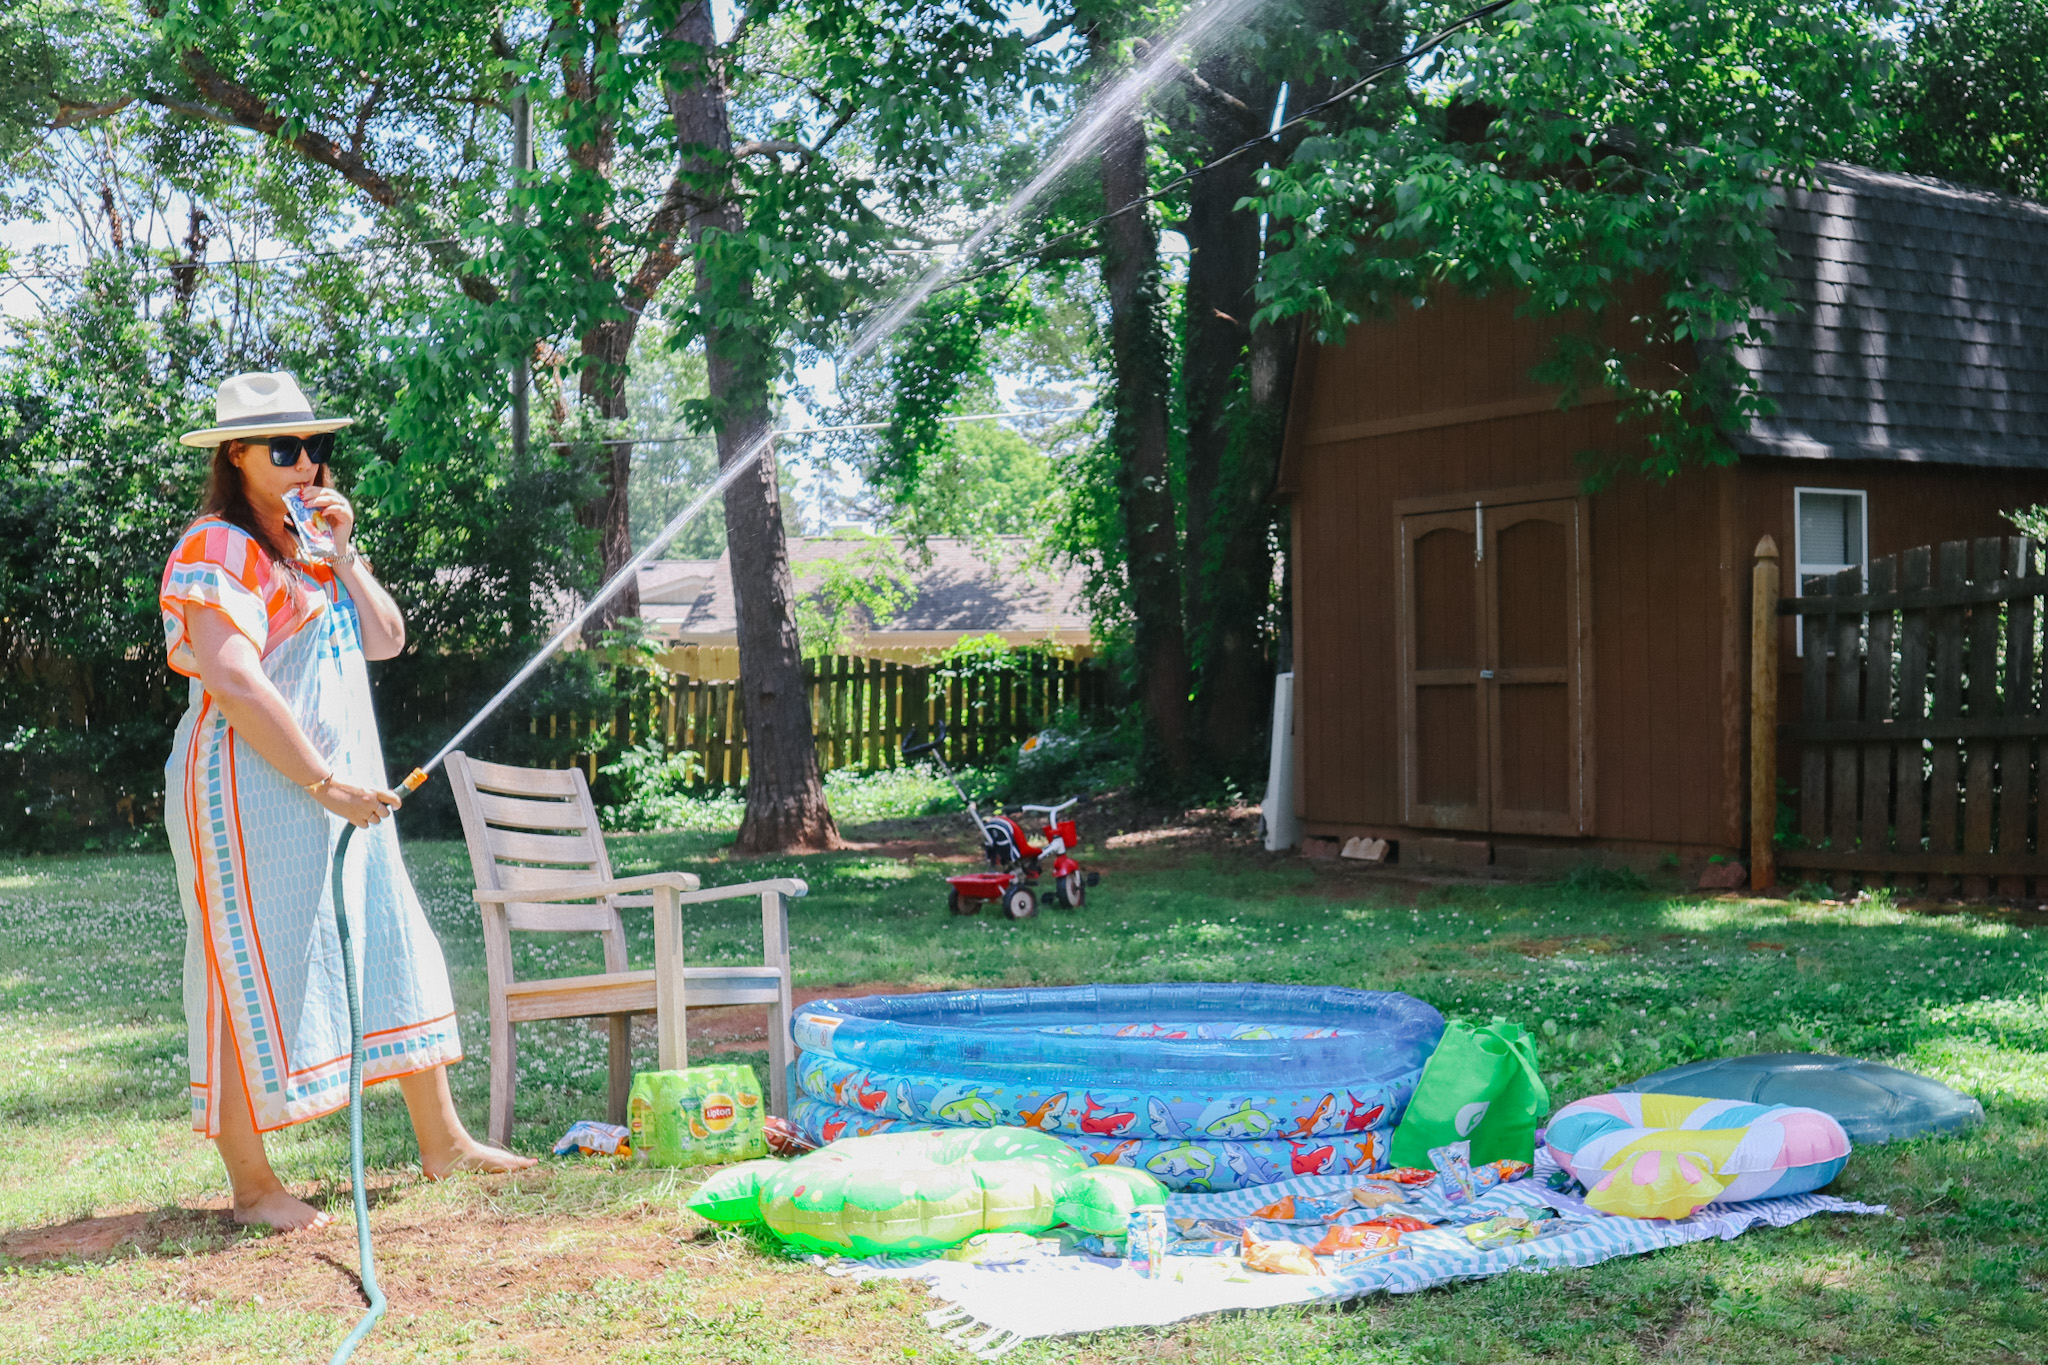 30 Tips to Survive Summer with Little Kids